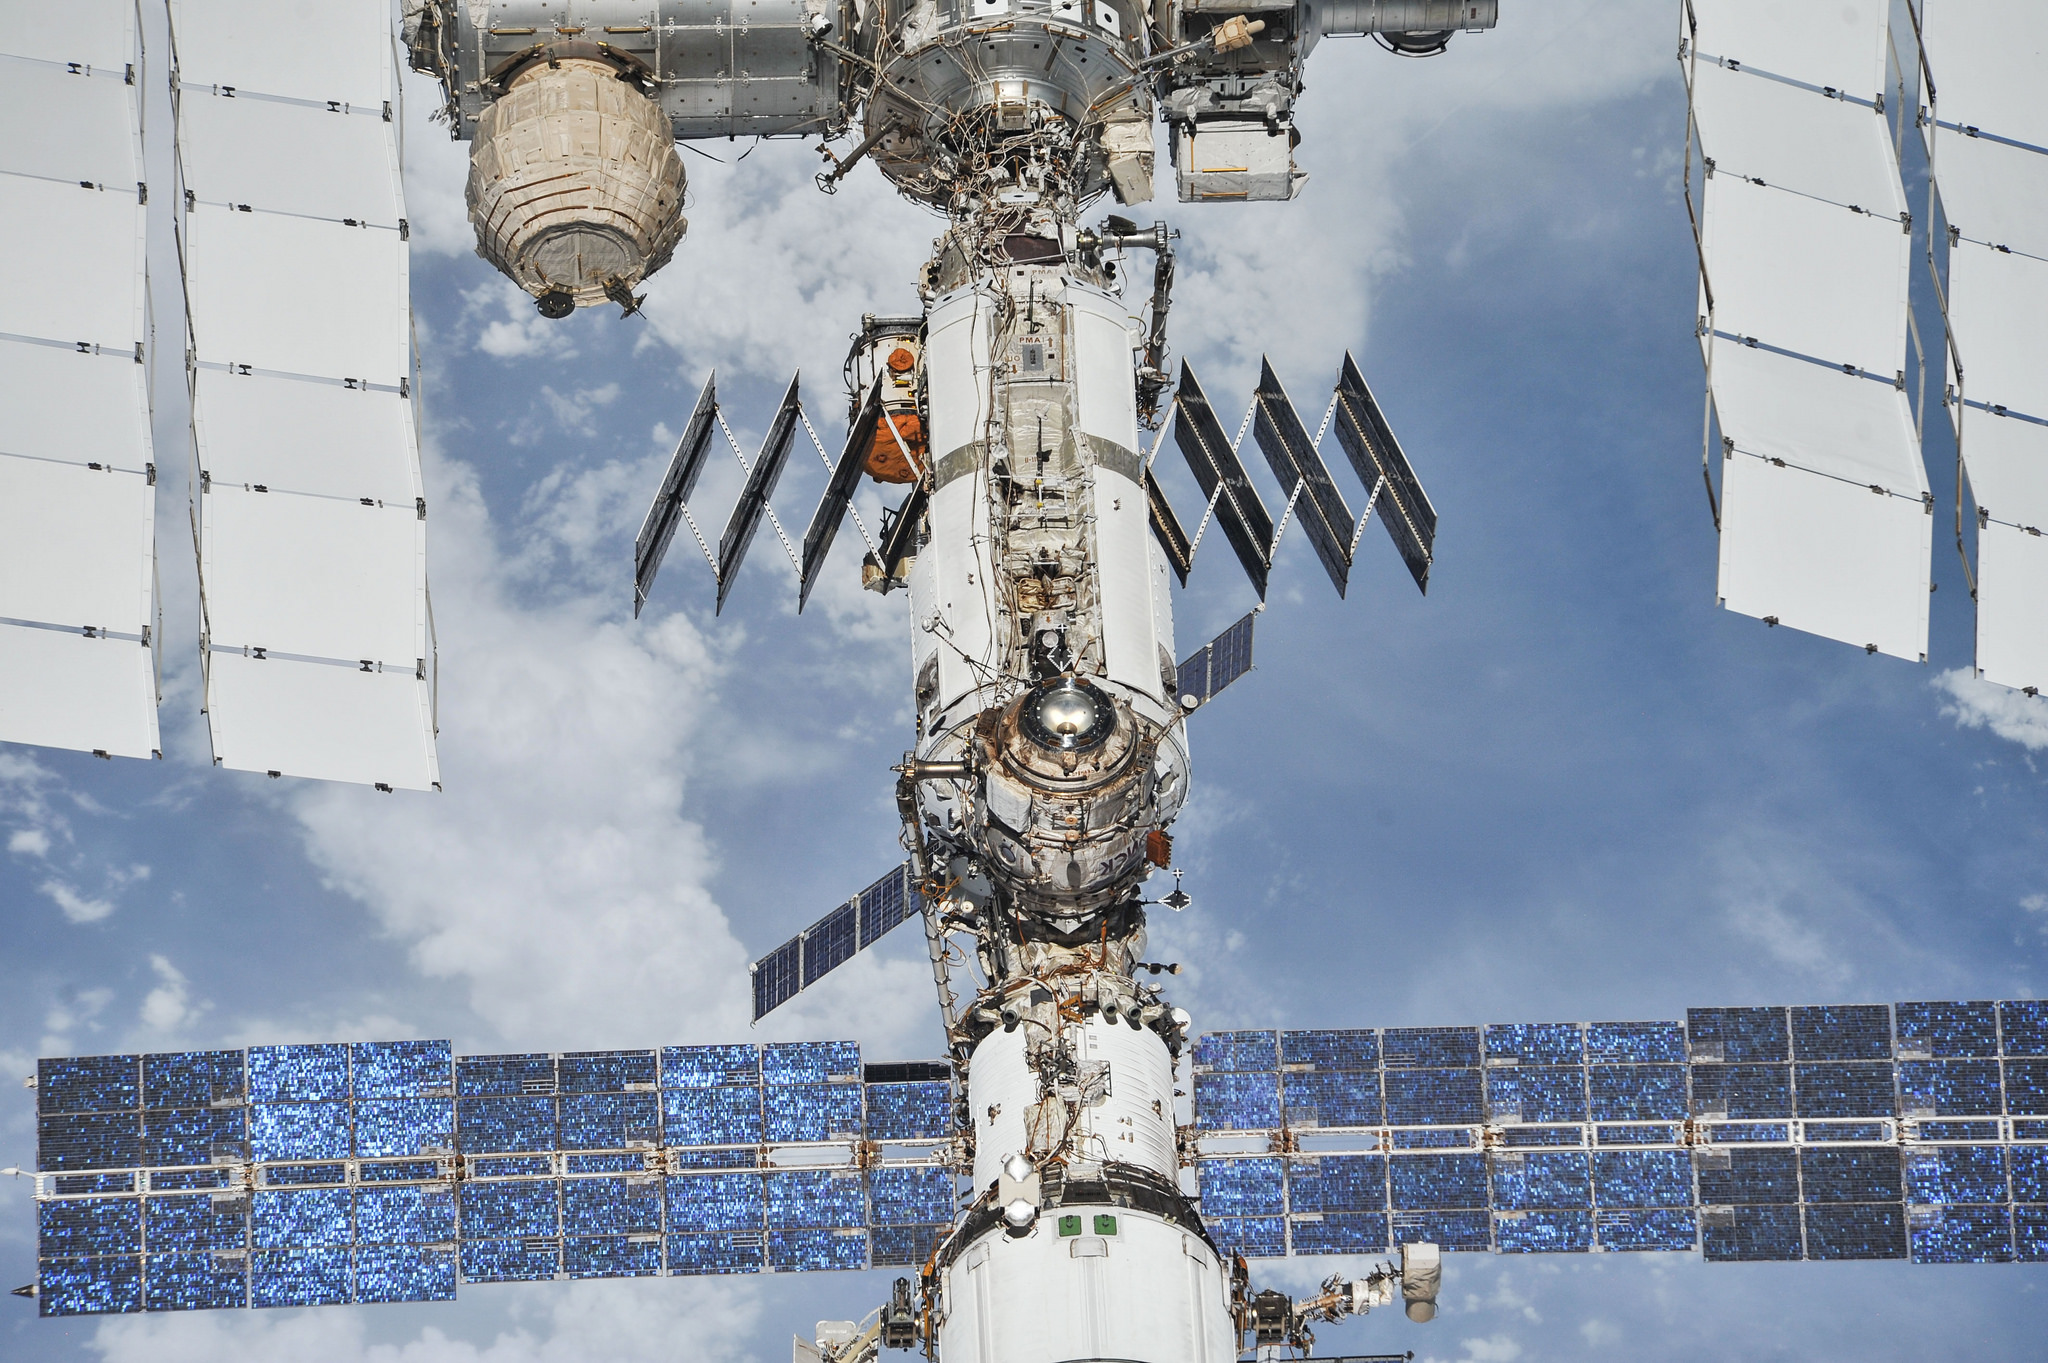 ISS photos by NASA and Roscosmos